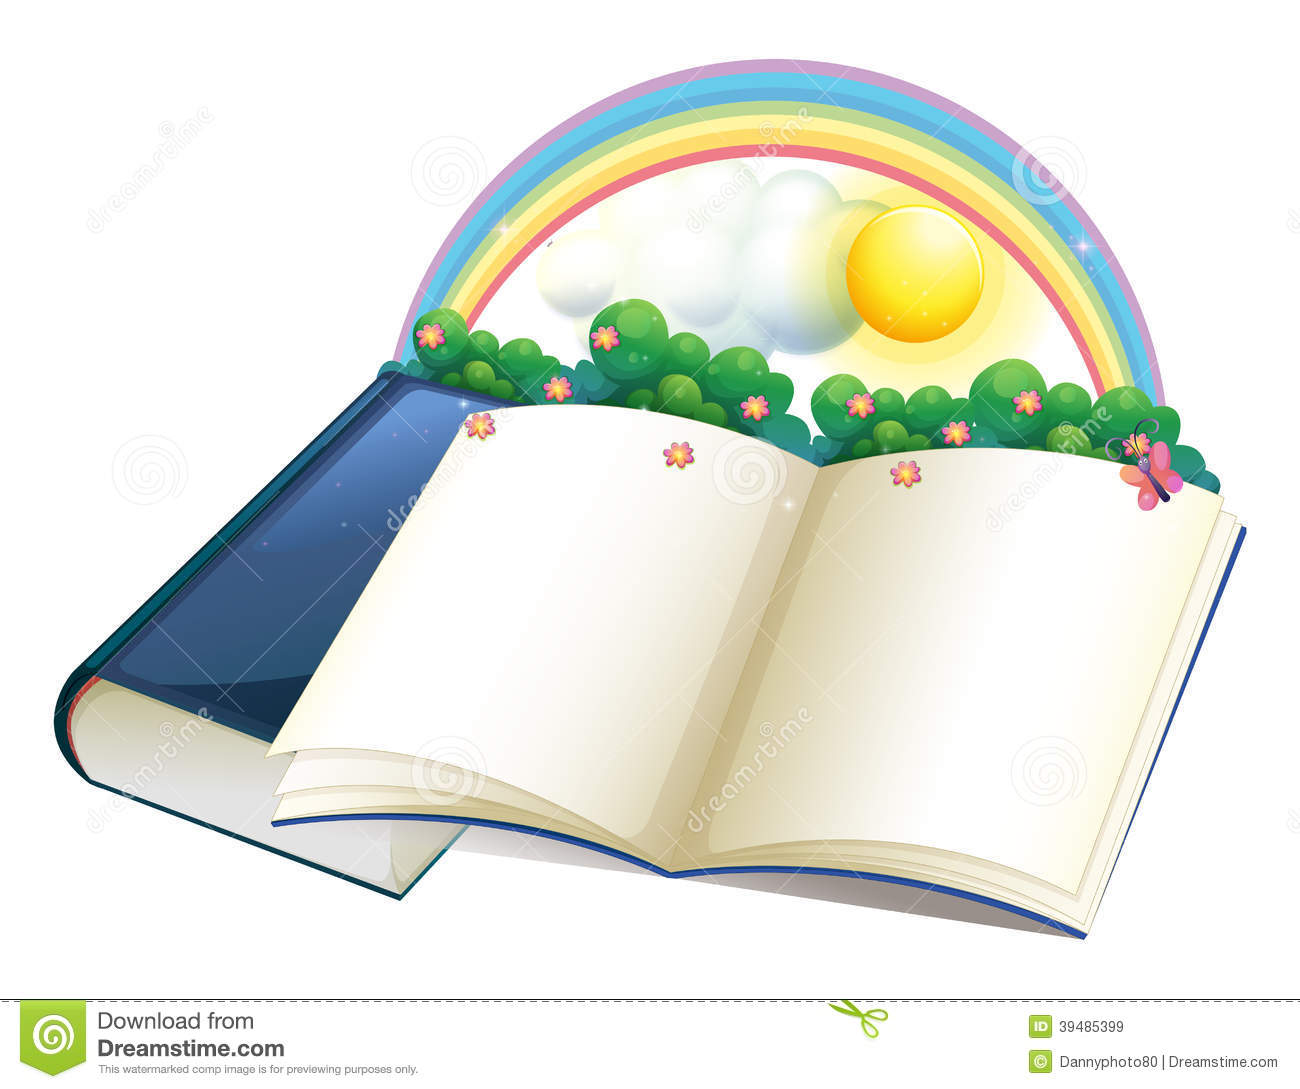 Bobook clipart storybook BBCpersian7 collections book Open clipart